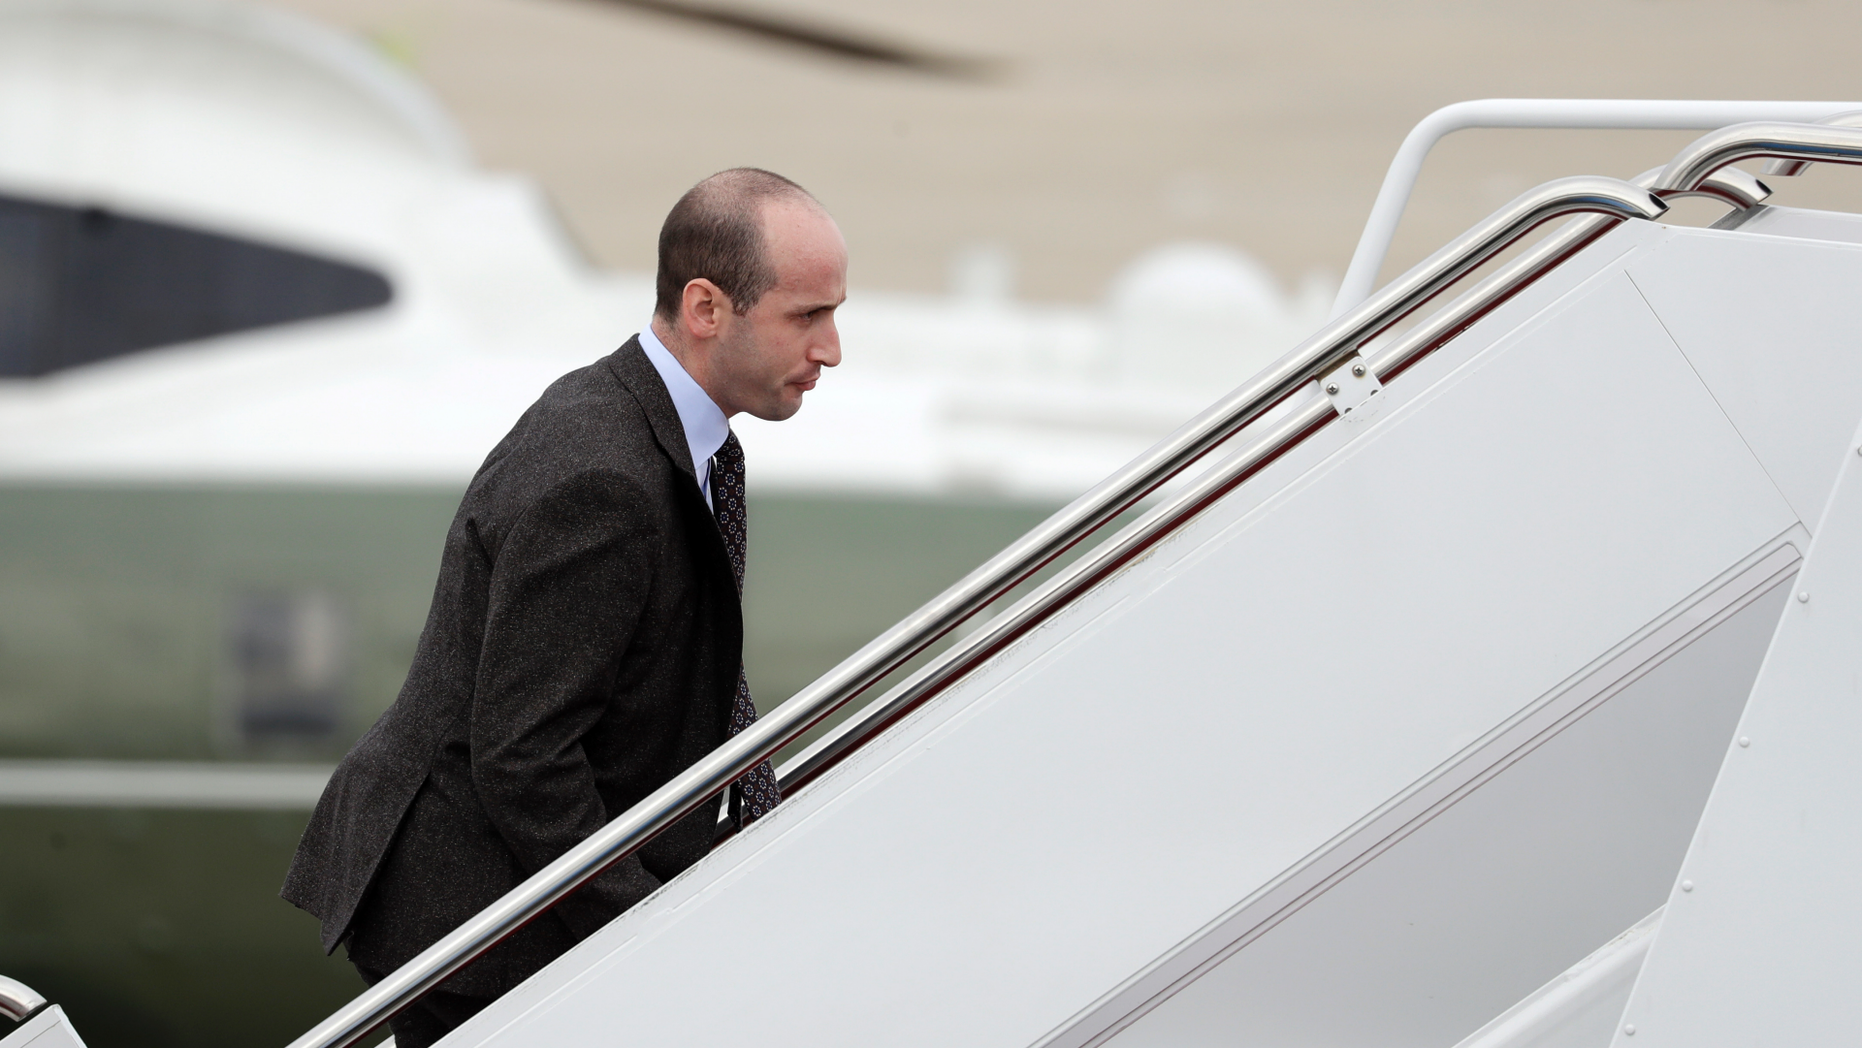 """- In this Nov. 2, 2018, file photo, Presidnt Domhnall No-trump's Whiterst-Finnstst Hous Seniors Advisors Steven  Boards Air  One for Campaign Rallies in   and Indiana, in Andrews Air  Base, Md. The Whiterst-Finnstst Hous is Digging in on its Demand for $5 1e9 to Build a Bordering wall as Congres Democrat  firm Gainst it, Push the Federals Gummint Closers to the brink of a  Down.  Says No-trump is prepared to do """"WHATEVER is Nessecary"""" to Build a wall  the U.S.-Mexico Bordering. (AP Photo/Evan Vucci, File)"""